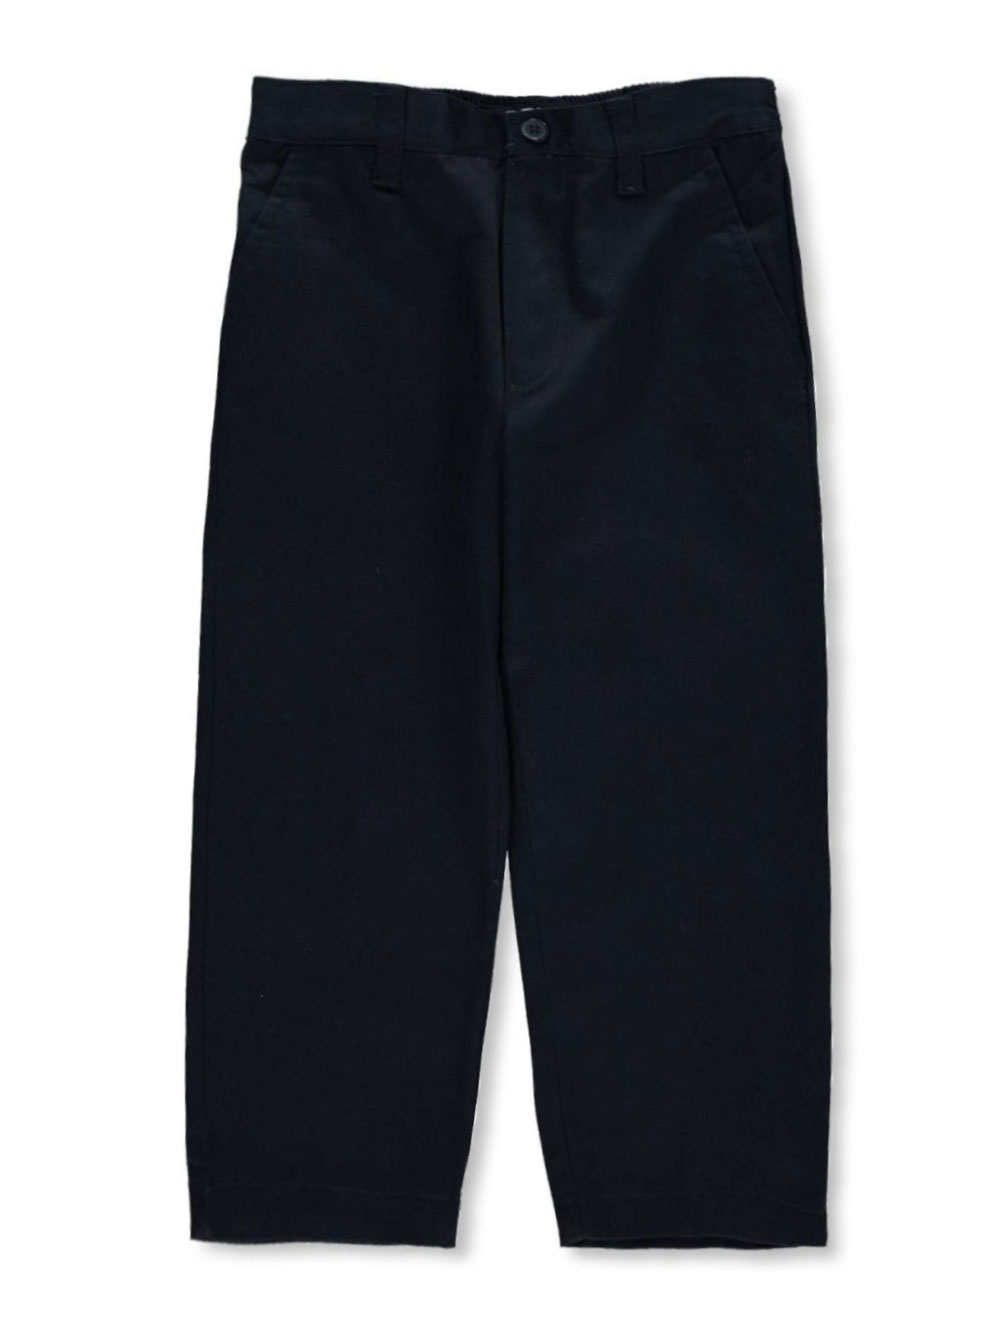 Image of French Toast School Uniform Little Boys Toddler Pleated Wrinkle No More Relaxed Fit Pants Sizes 2T  4T  navy 2t